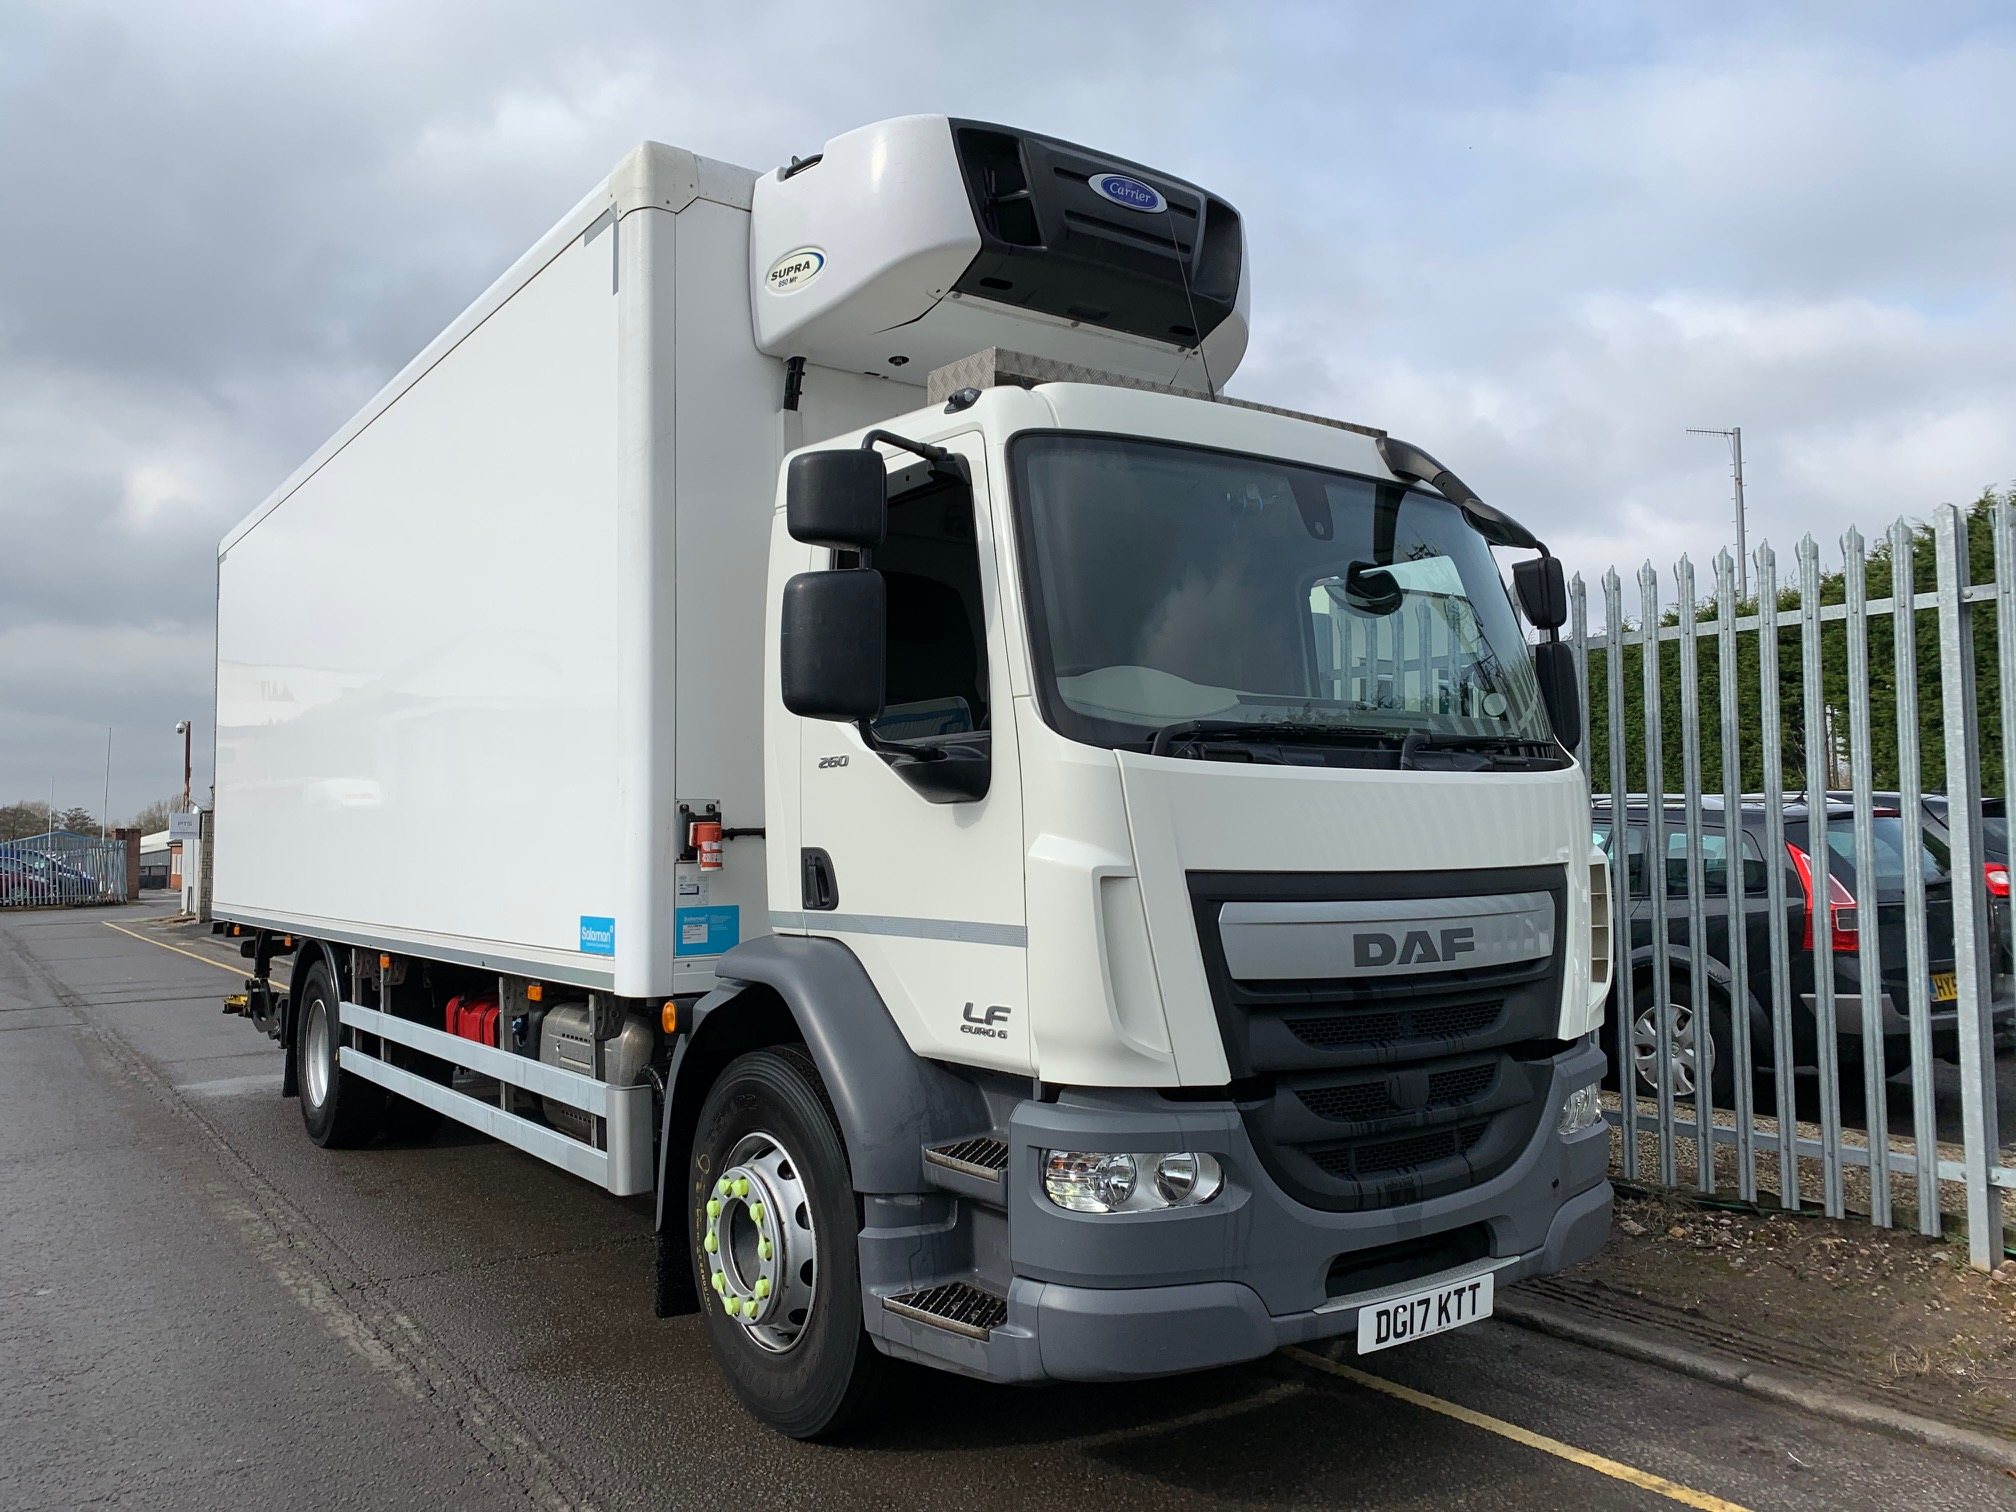 2017 Daf LF Fridge Tailift. 18 Tonne, Carrier Supra 850Mt Engine, Dhollandia Tuckunder Tailift (1500KG Capacity), Day Cab, Euro 6, AS Tronic Automatic Gearbox, 260bhp, Choice & Warranty Available.